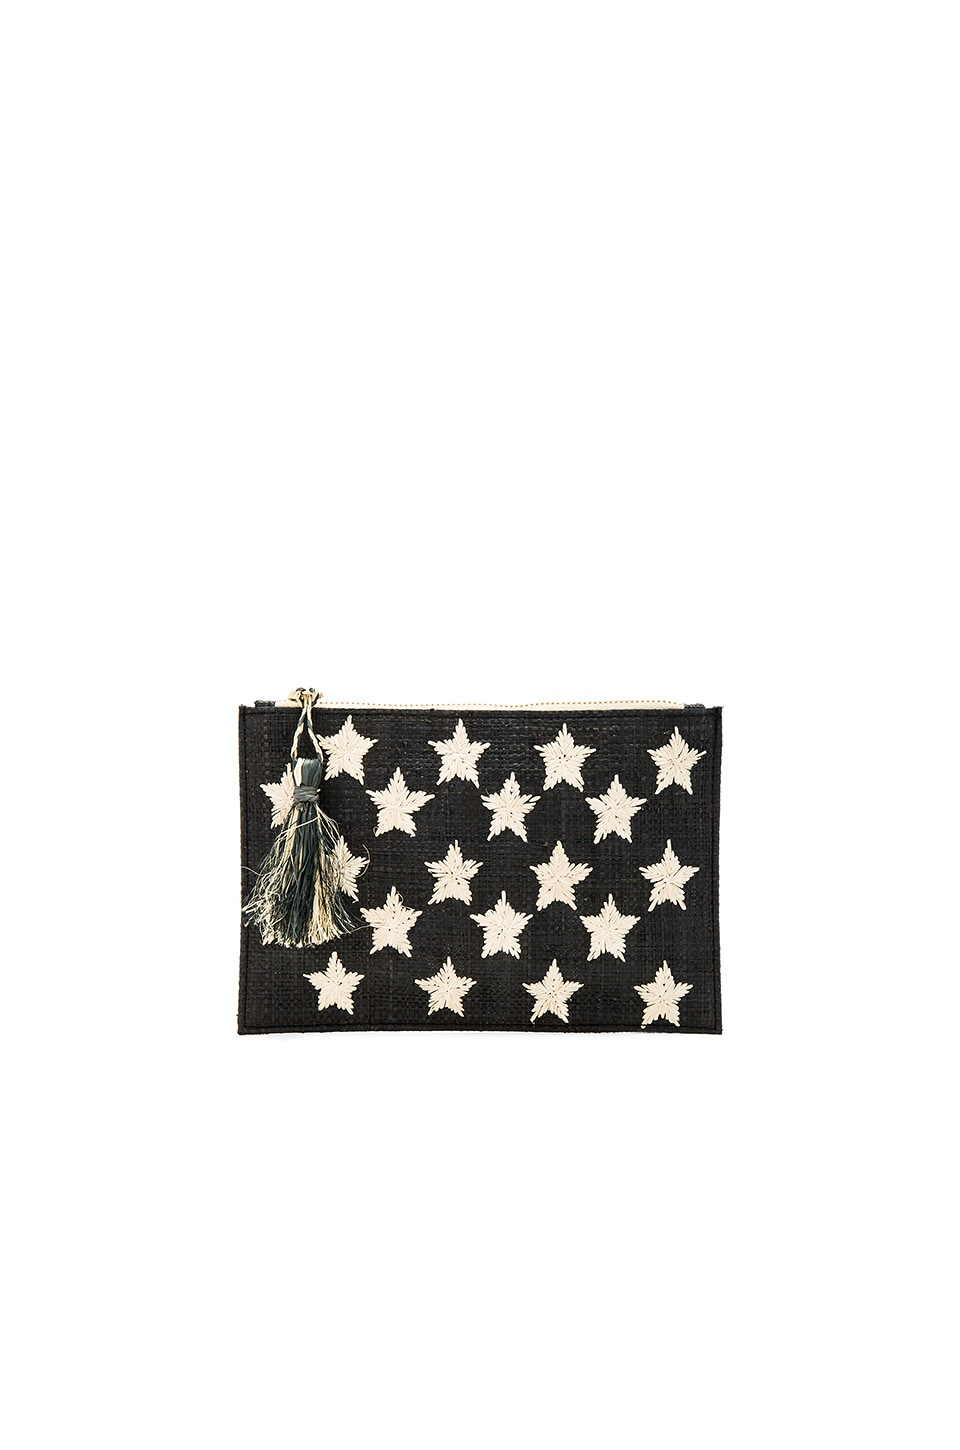 KAYU Star Clutch in Black